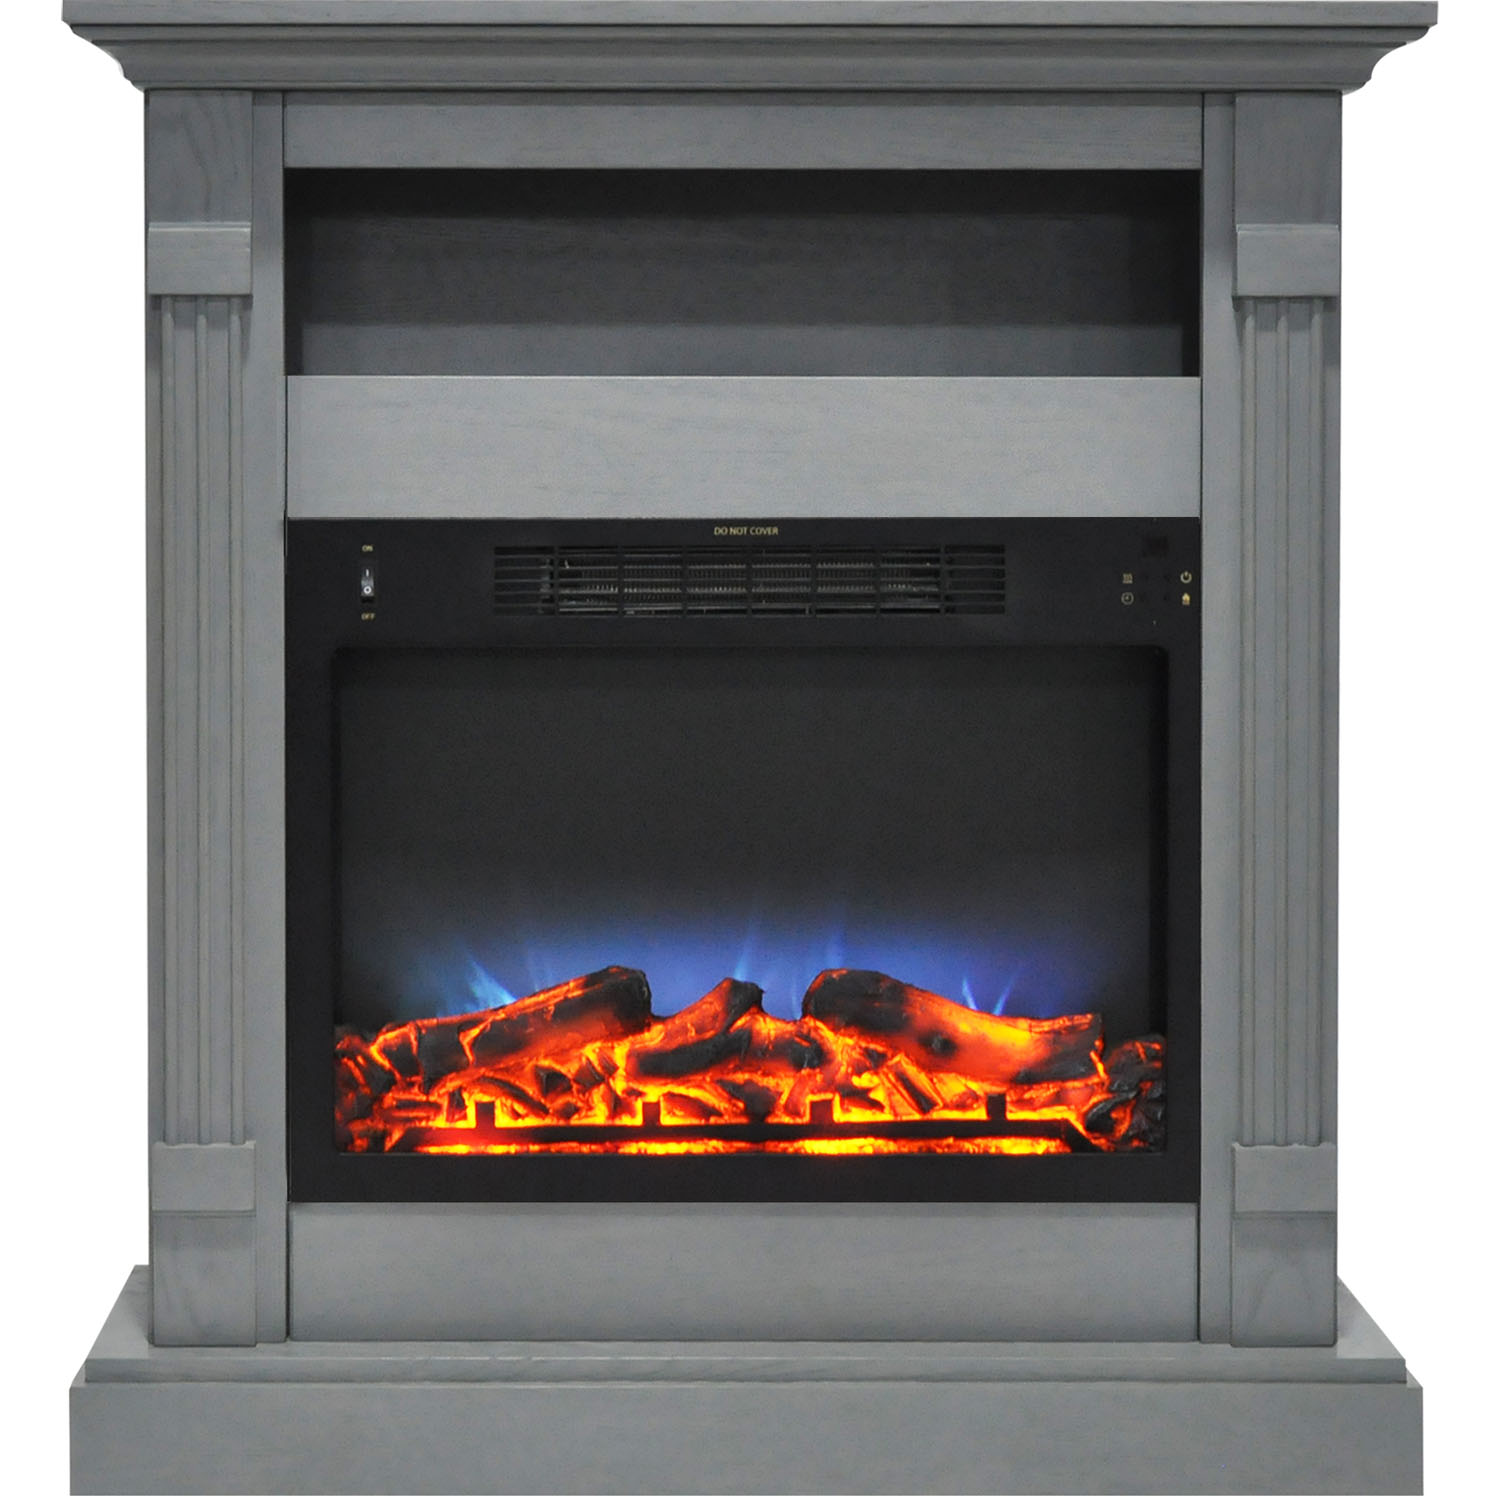 "Cambridge Sienna 34"" Electric Fireplace Mantel Heater with Multi-Color LED Flame Display"